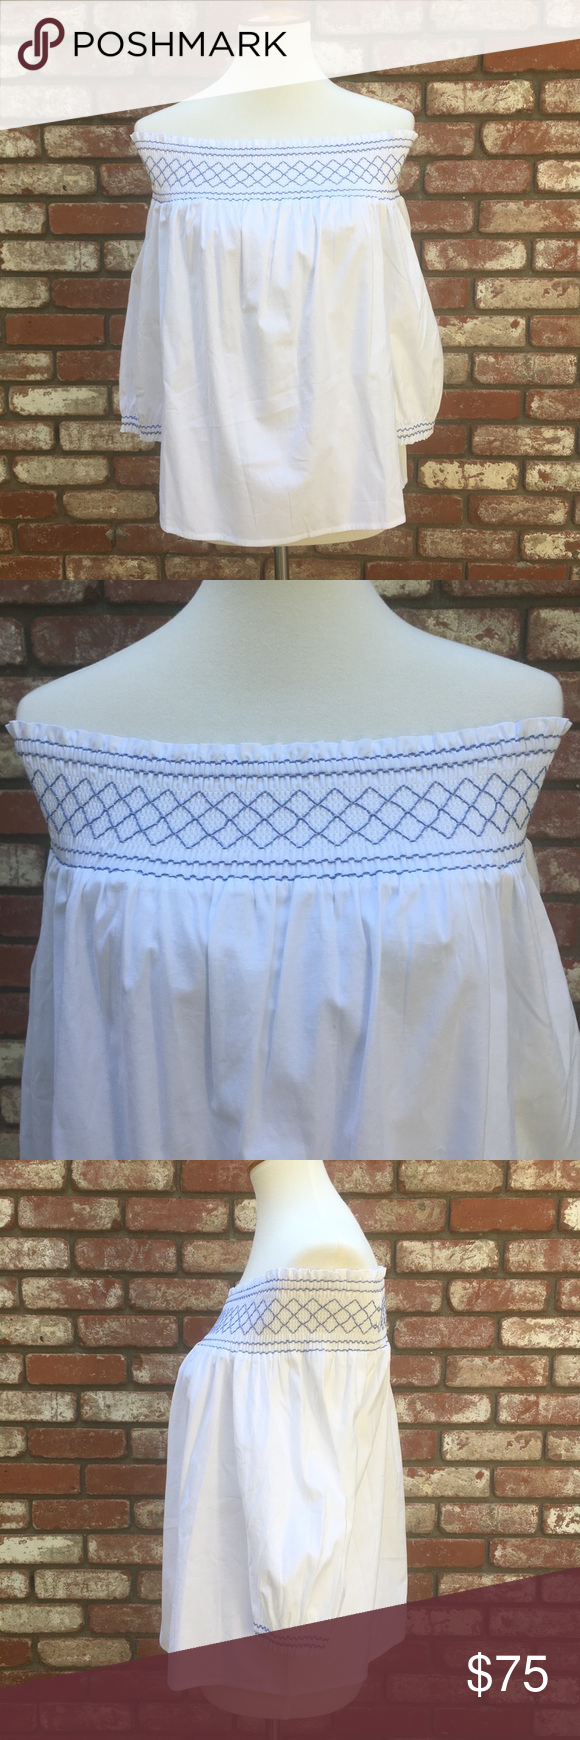 8ac4427afcc VINEYARD VINES WHITE SMOCKED OFF THE SHOULDER TOP NWT Vineyard Vines  Smocked off the shoulder top